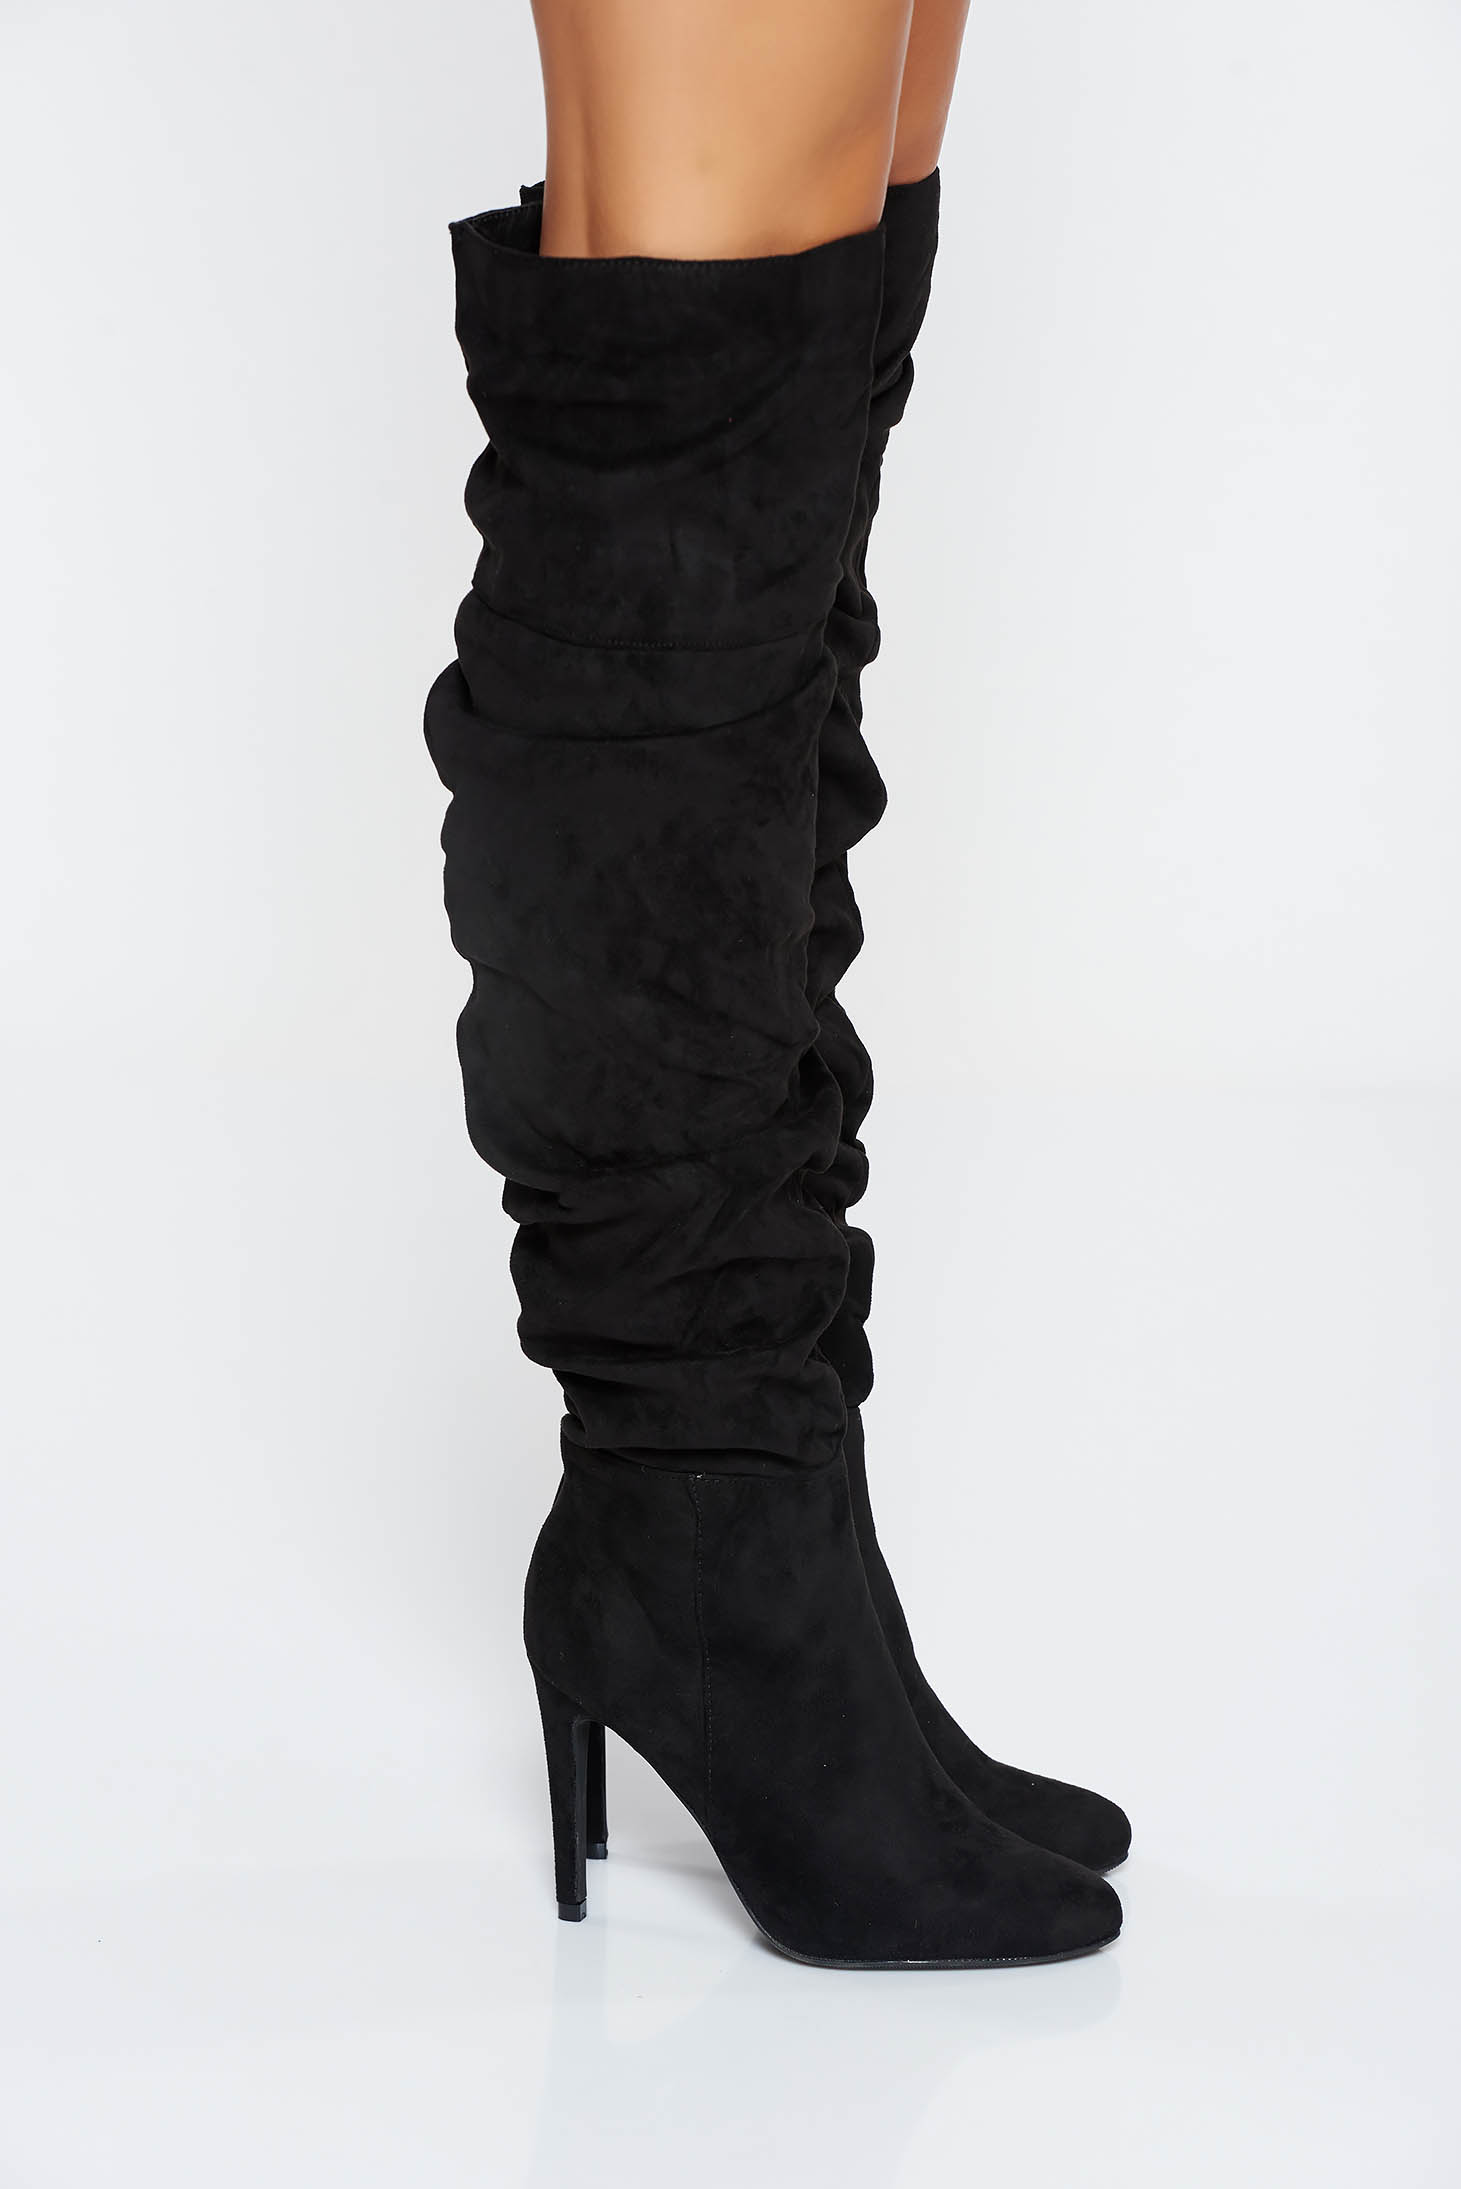 Black casual boots with high heels slightly round toe tip